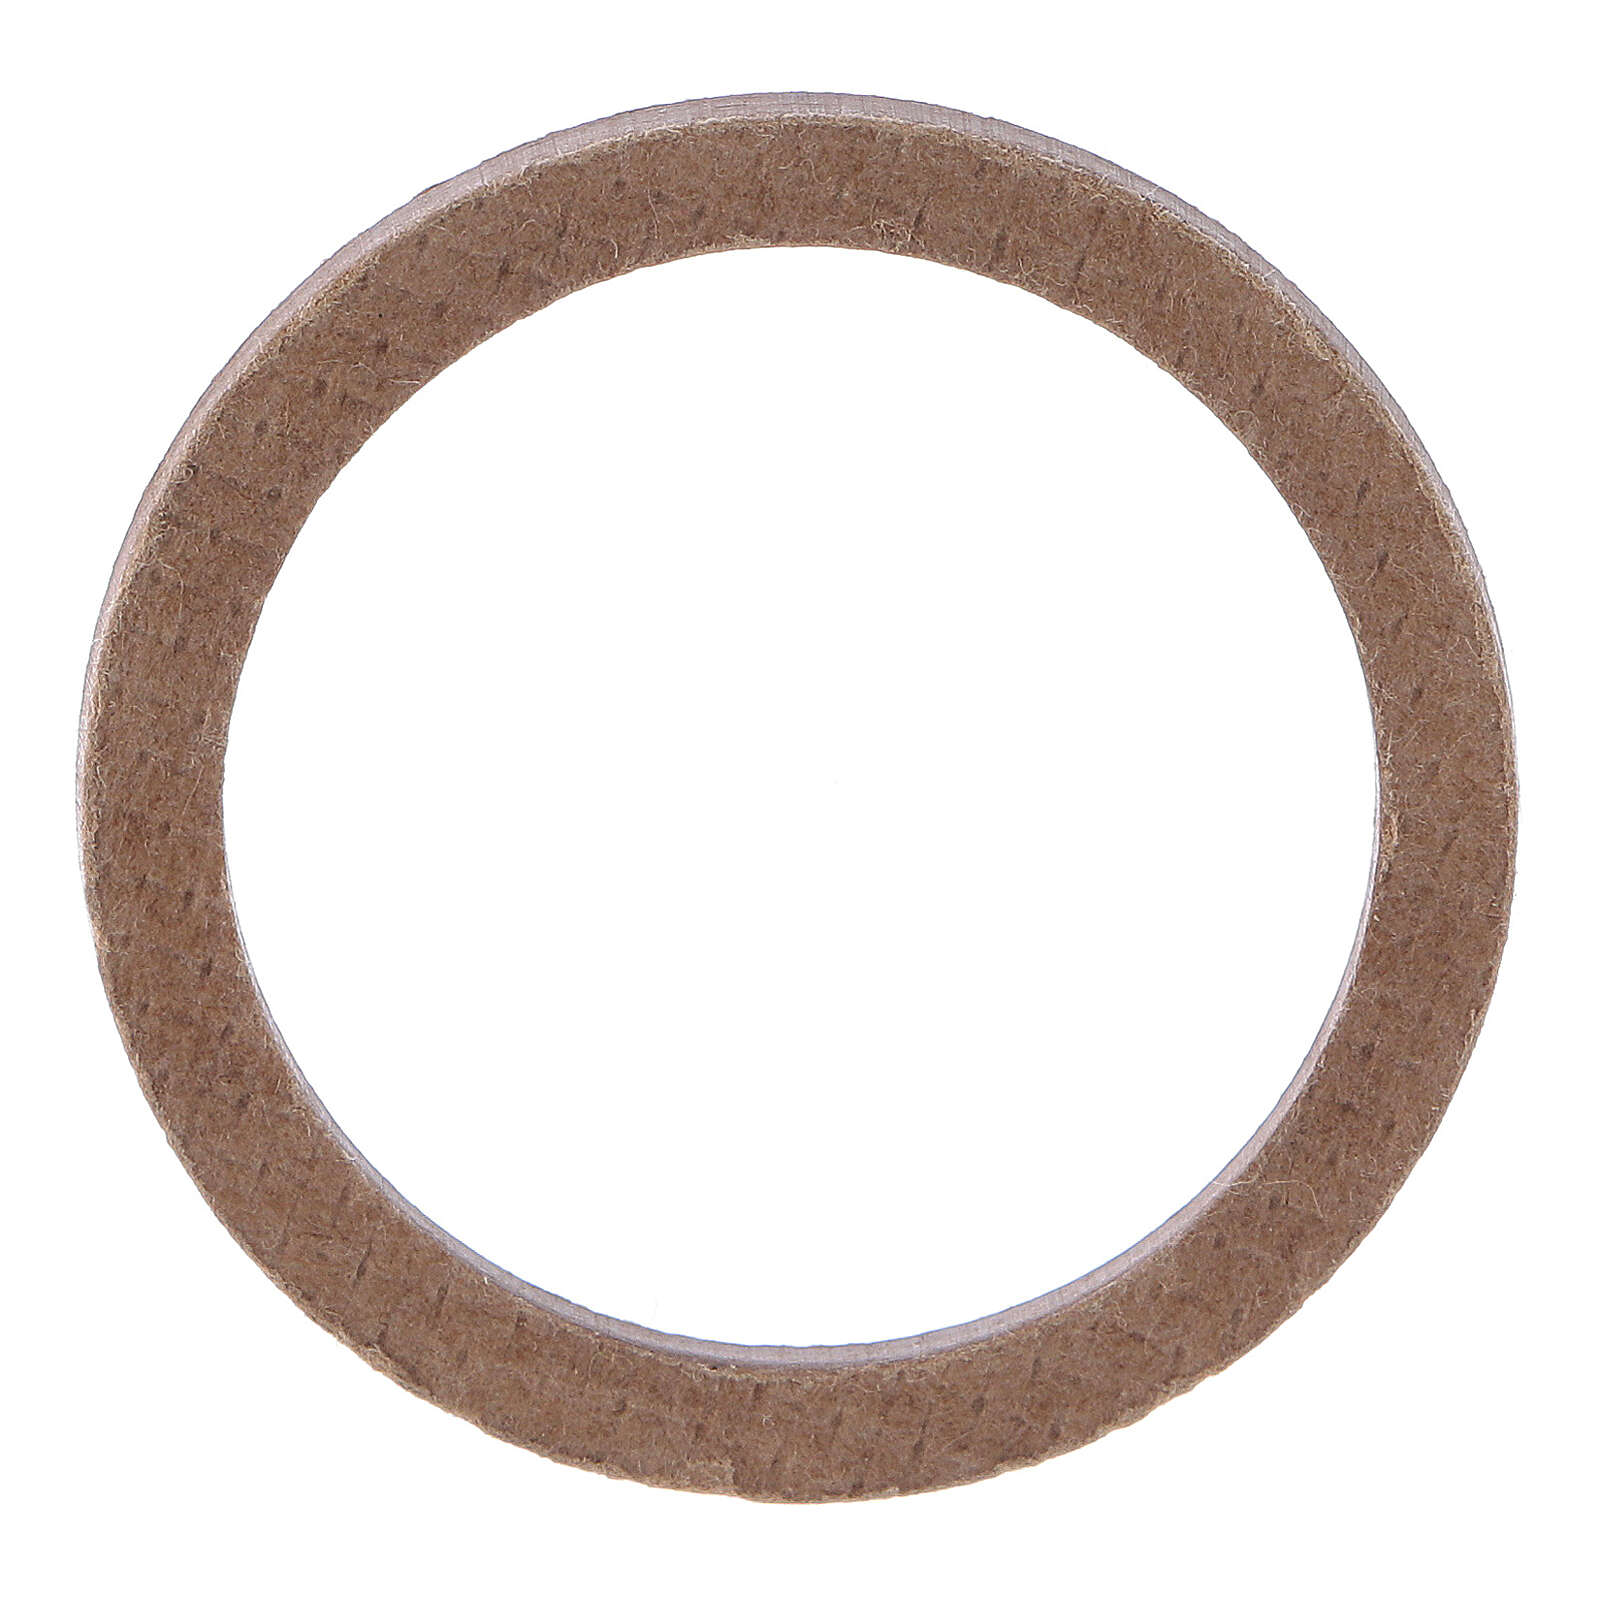 Insulating gasket for liquid candles, 4 cm diameter for PC004006-PC004008 3